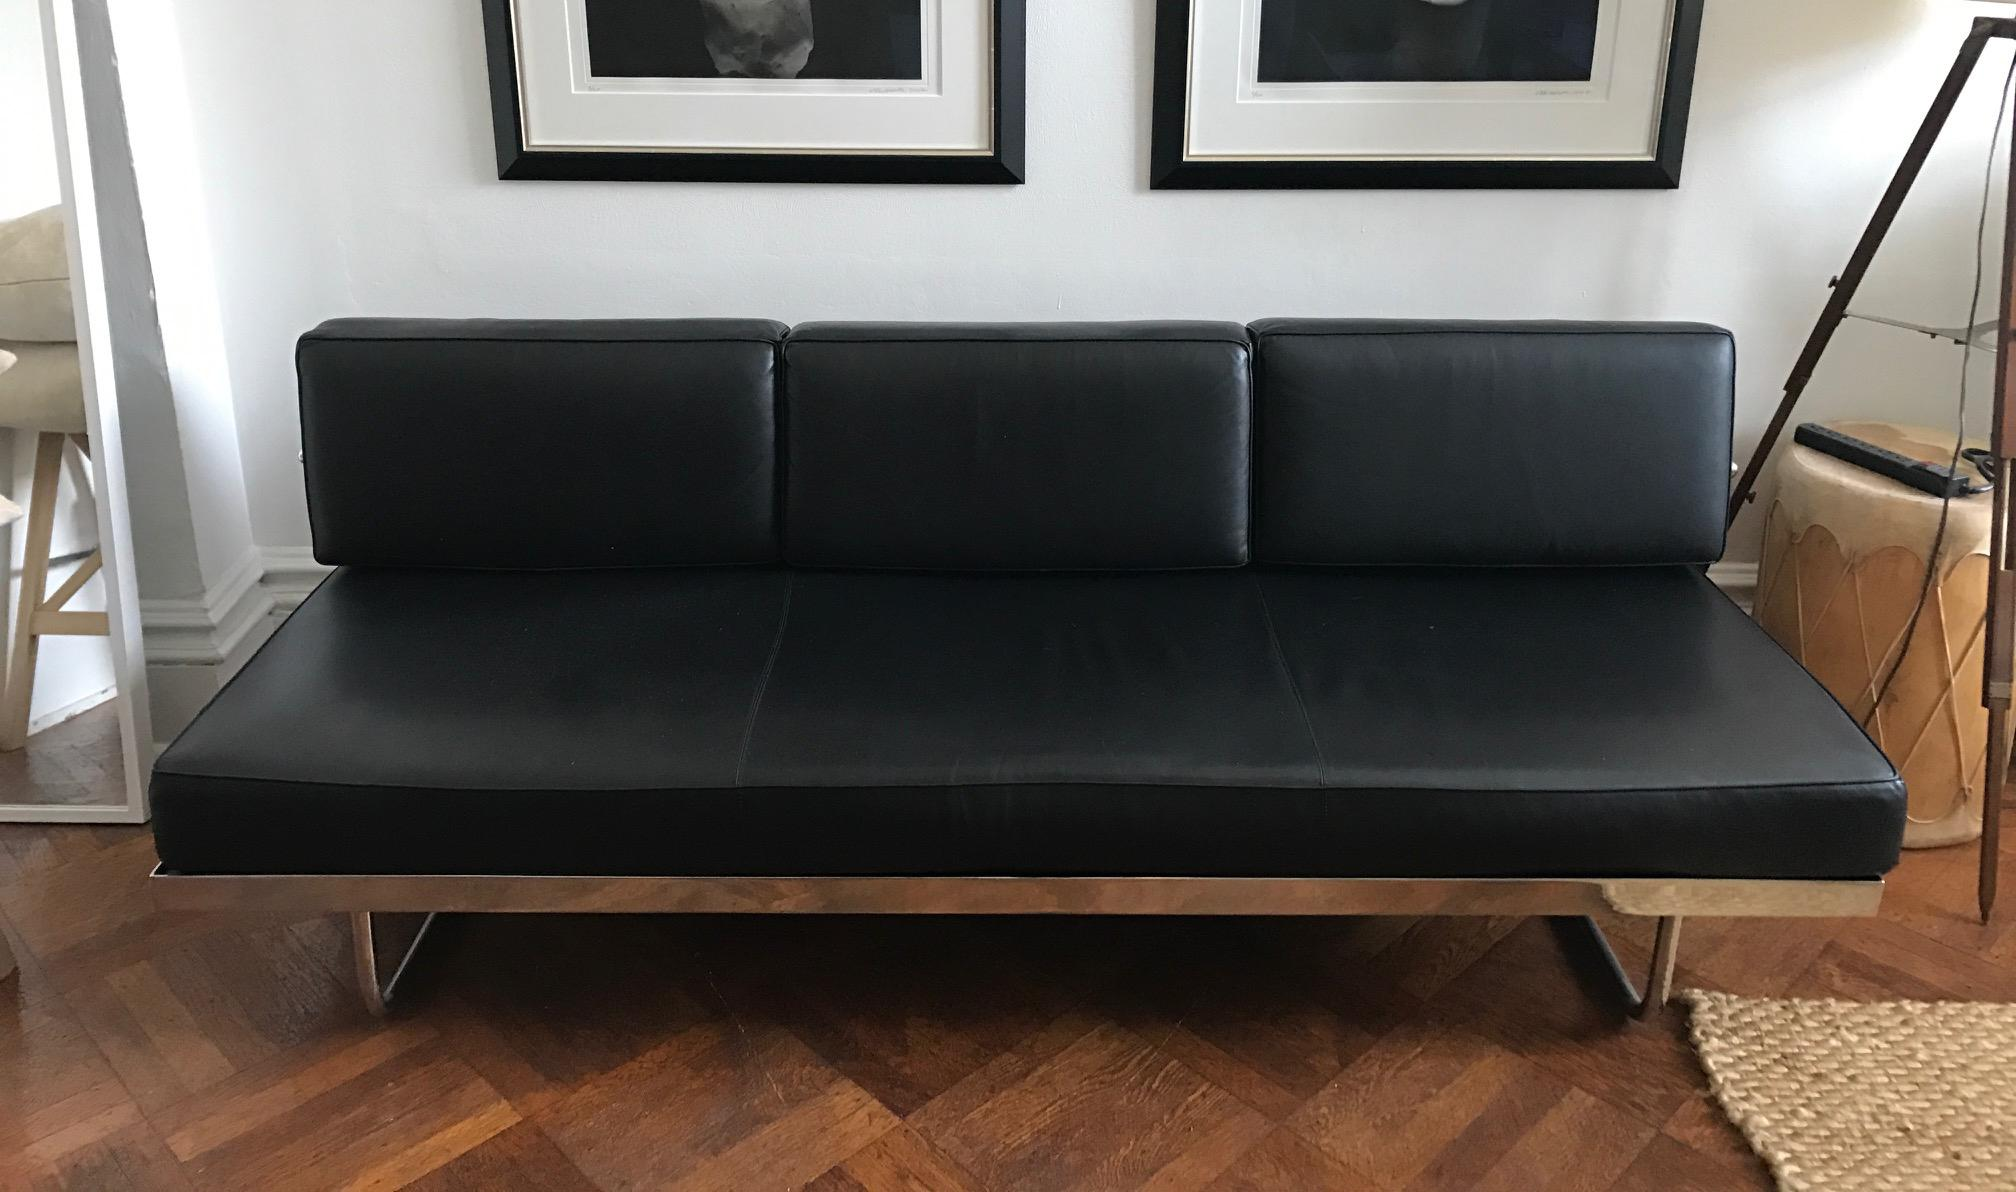 lc5 sofa price kijiji montreal furniture leather sets le corbusier daybed chairish day bed is a three seat with an attached backrest that